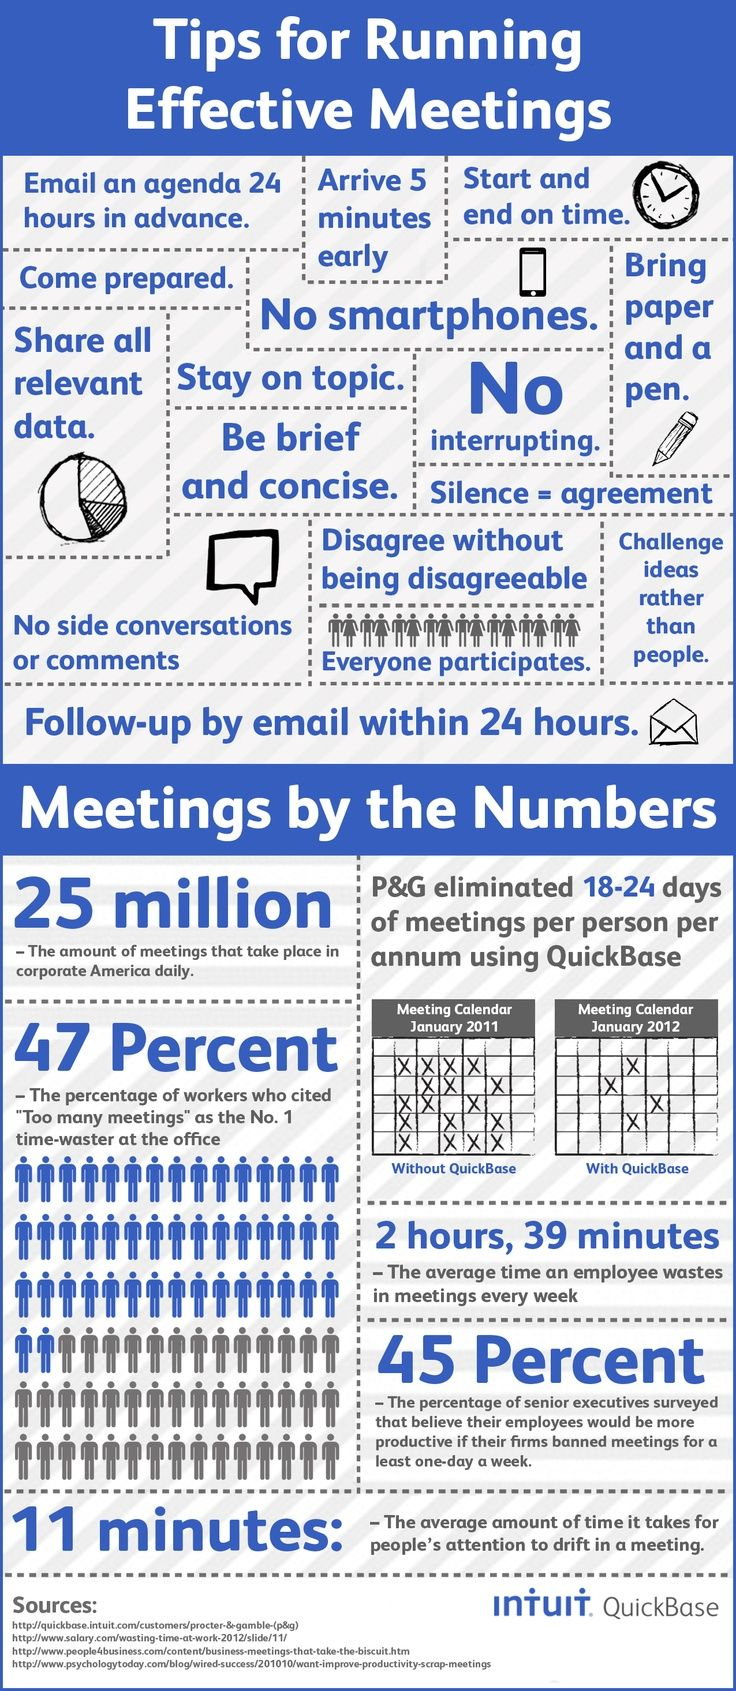 Tips for Running Effective Meetings #careeradvice